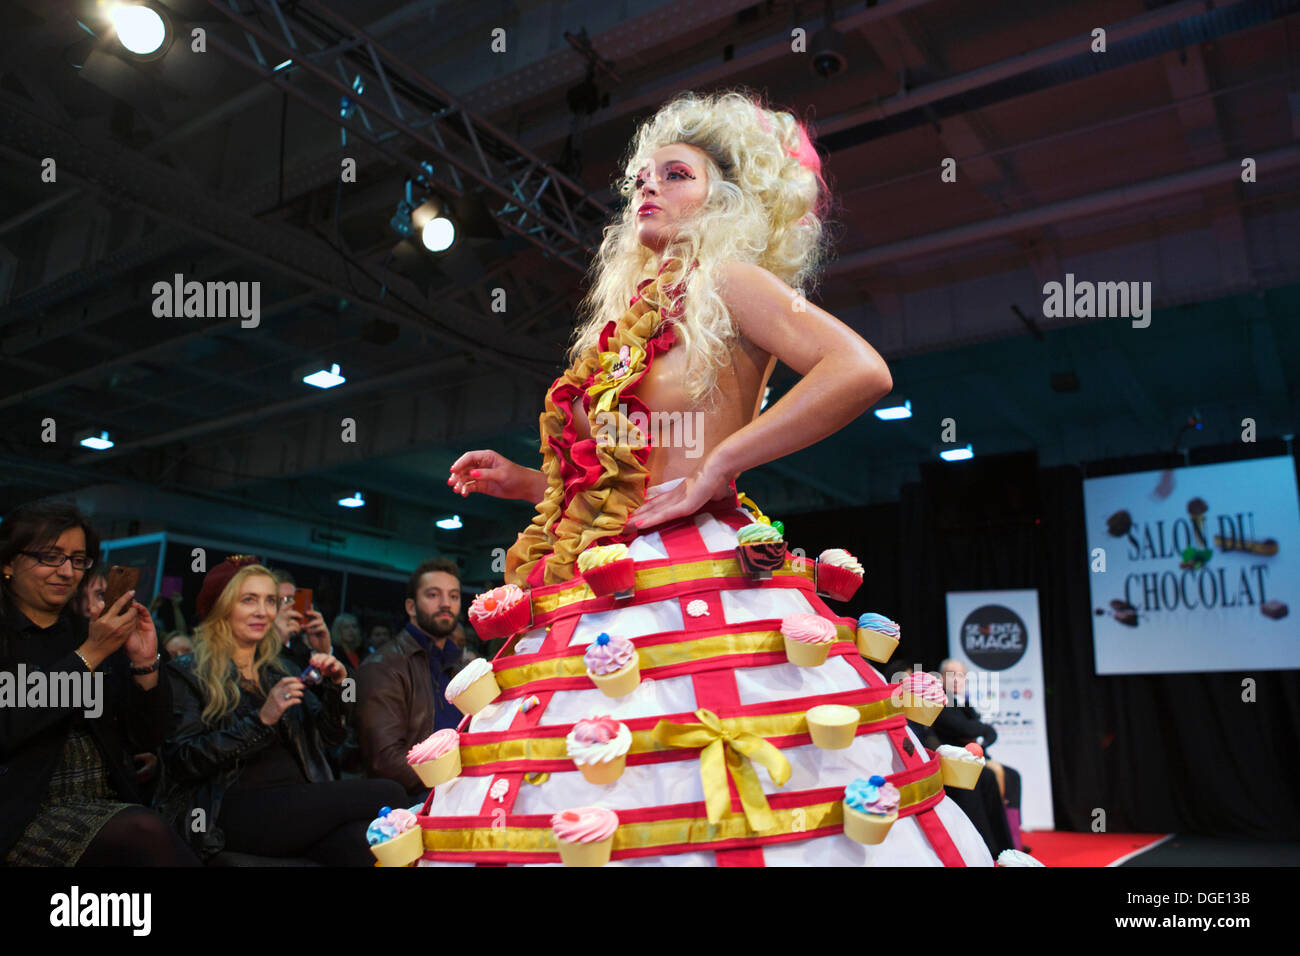 Chocolate Fashion Show Stock Photos & Chocolate Fashion Show Stock ...